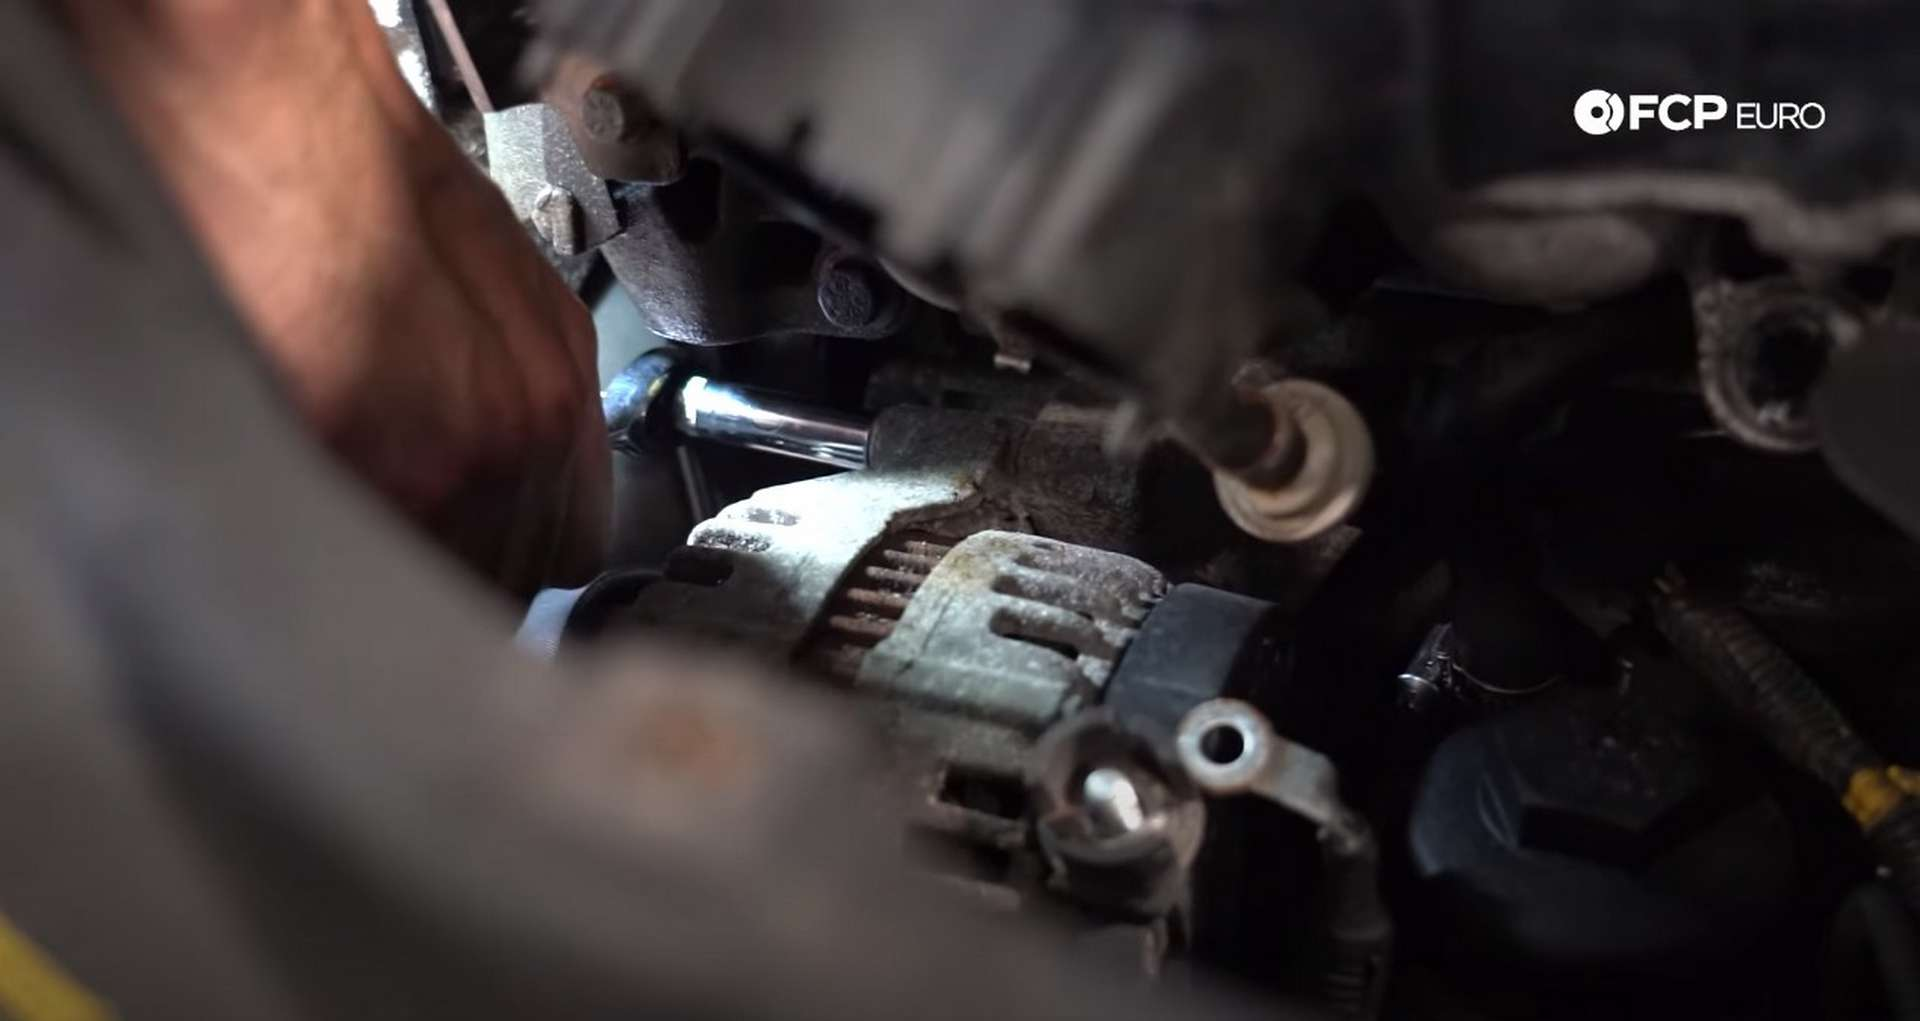 DIY Volvo Alternator and Serpentine Belt Replacement removing the alternator mounting bolts